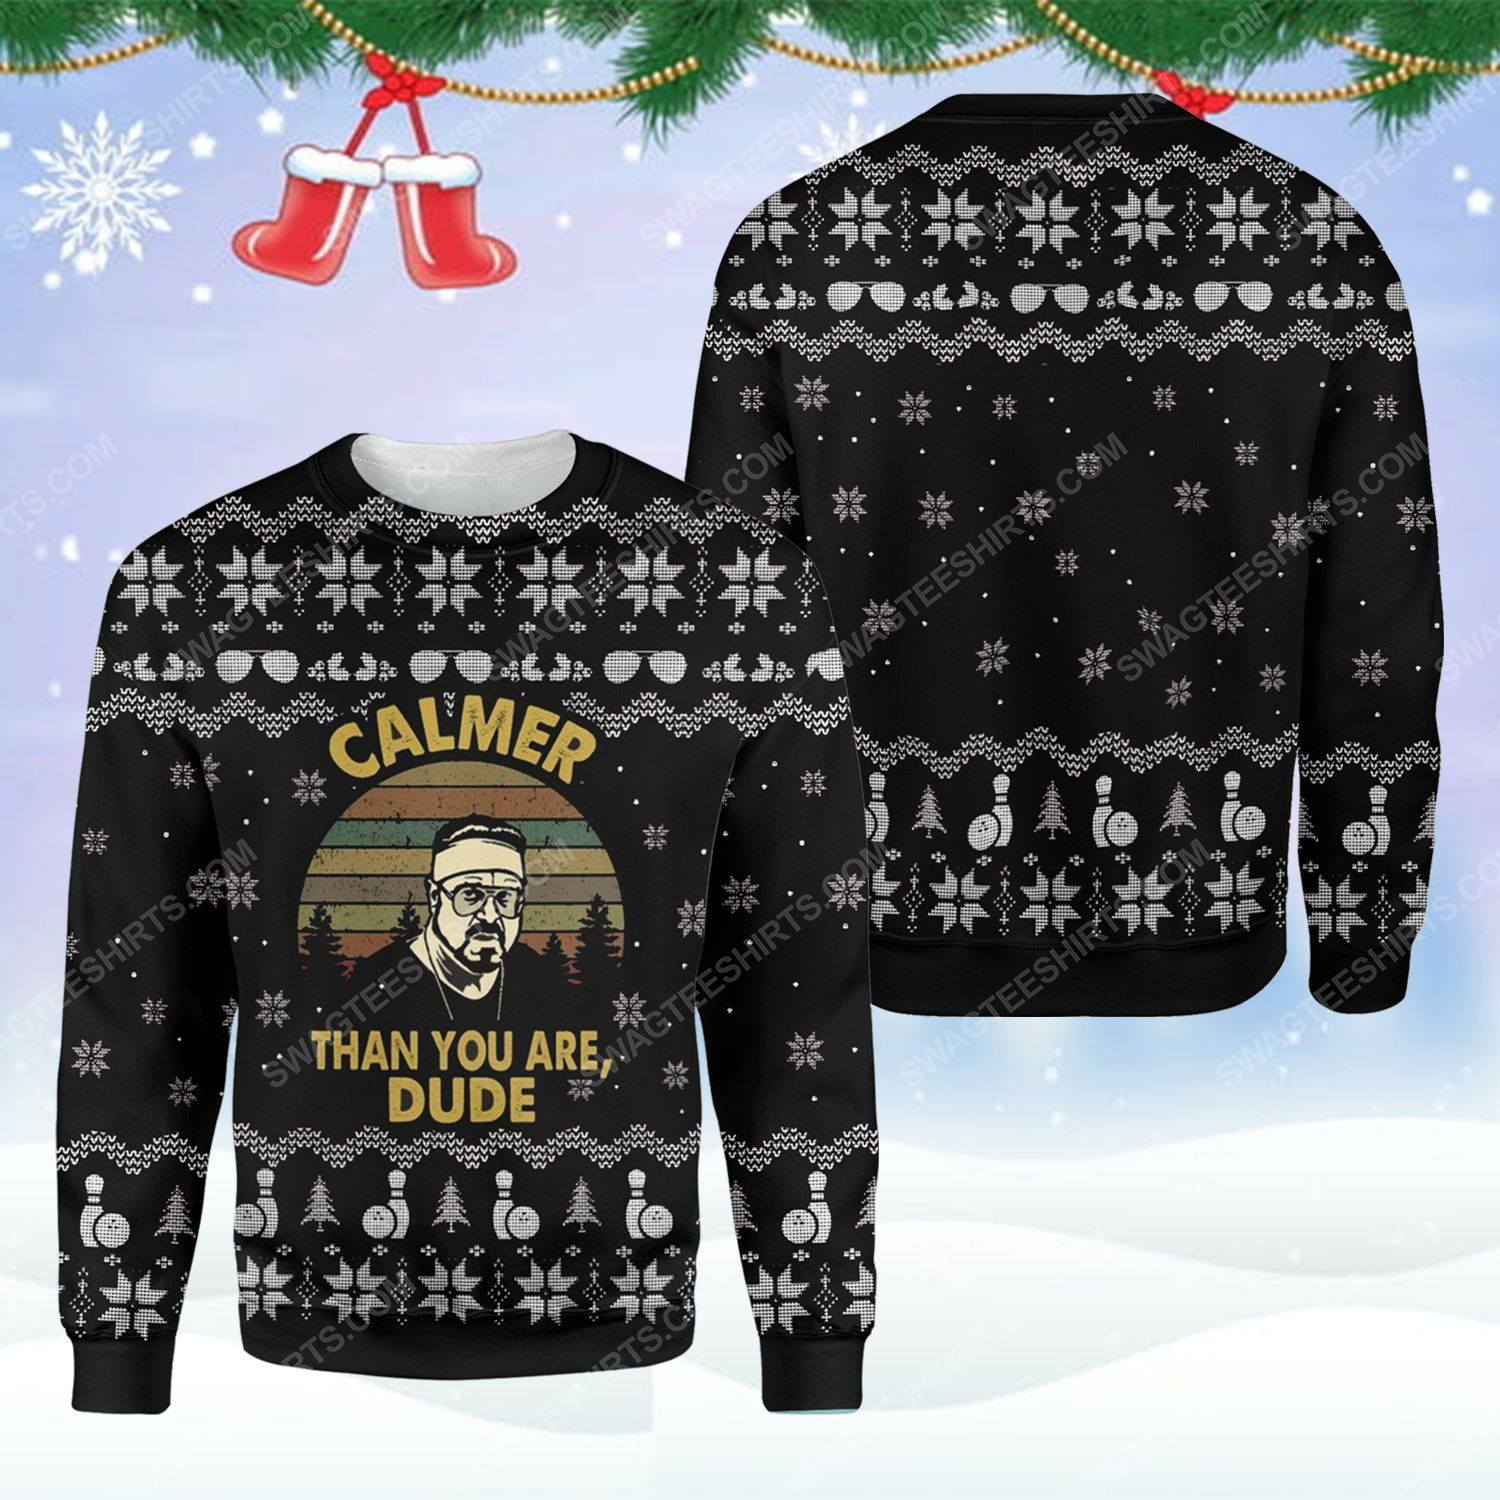 The big lebowski calmer than you are dude ugly christmas sweater - Copy